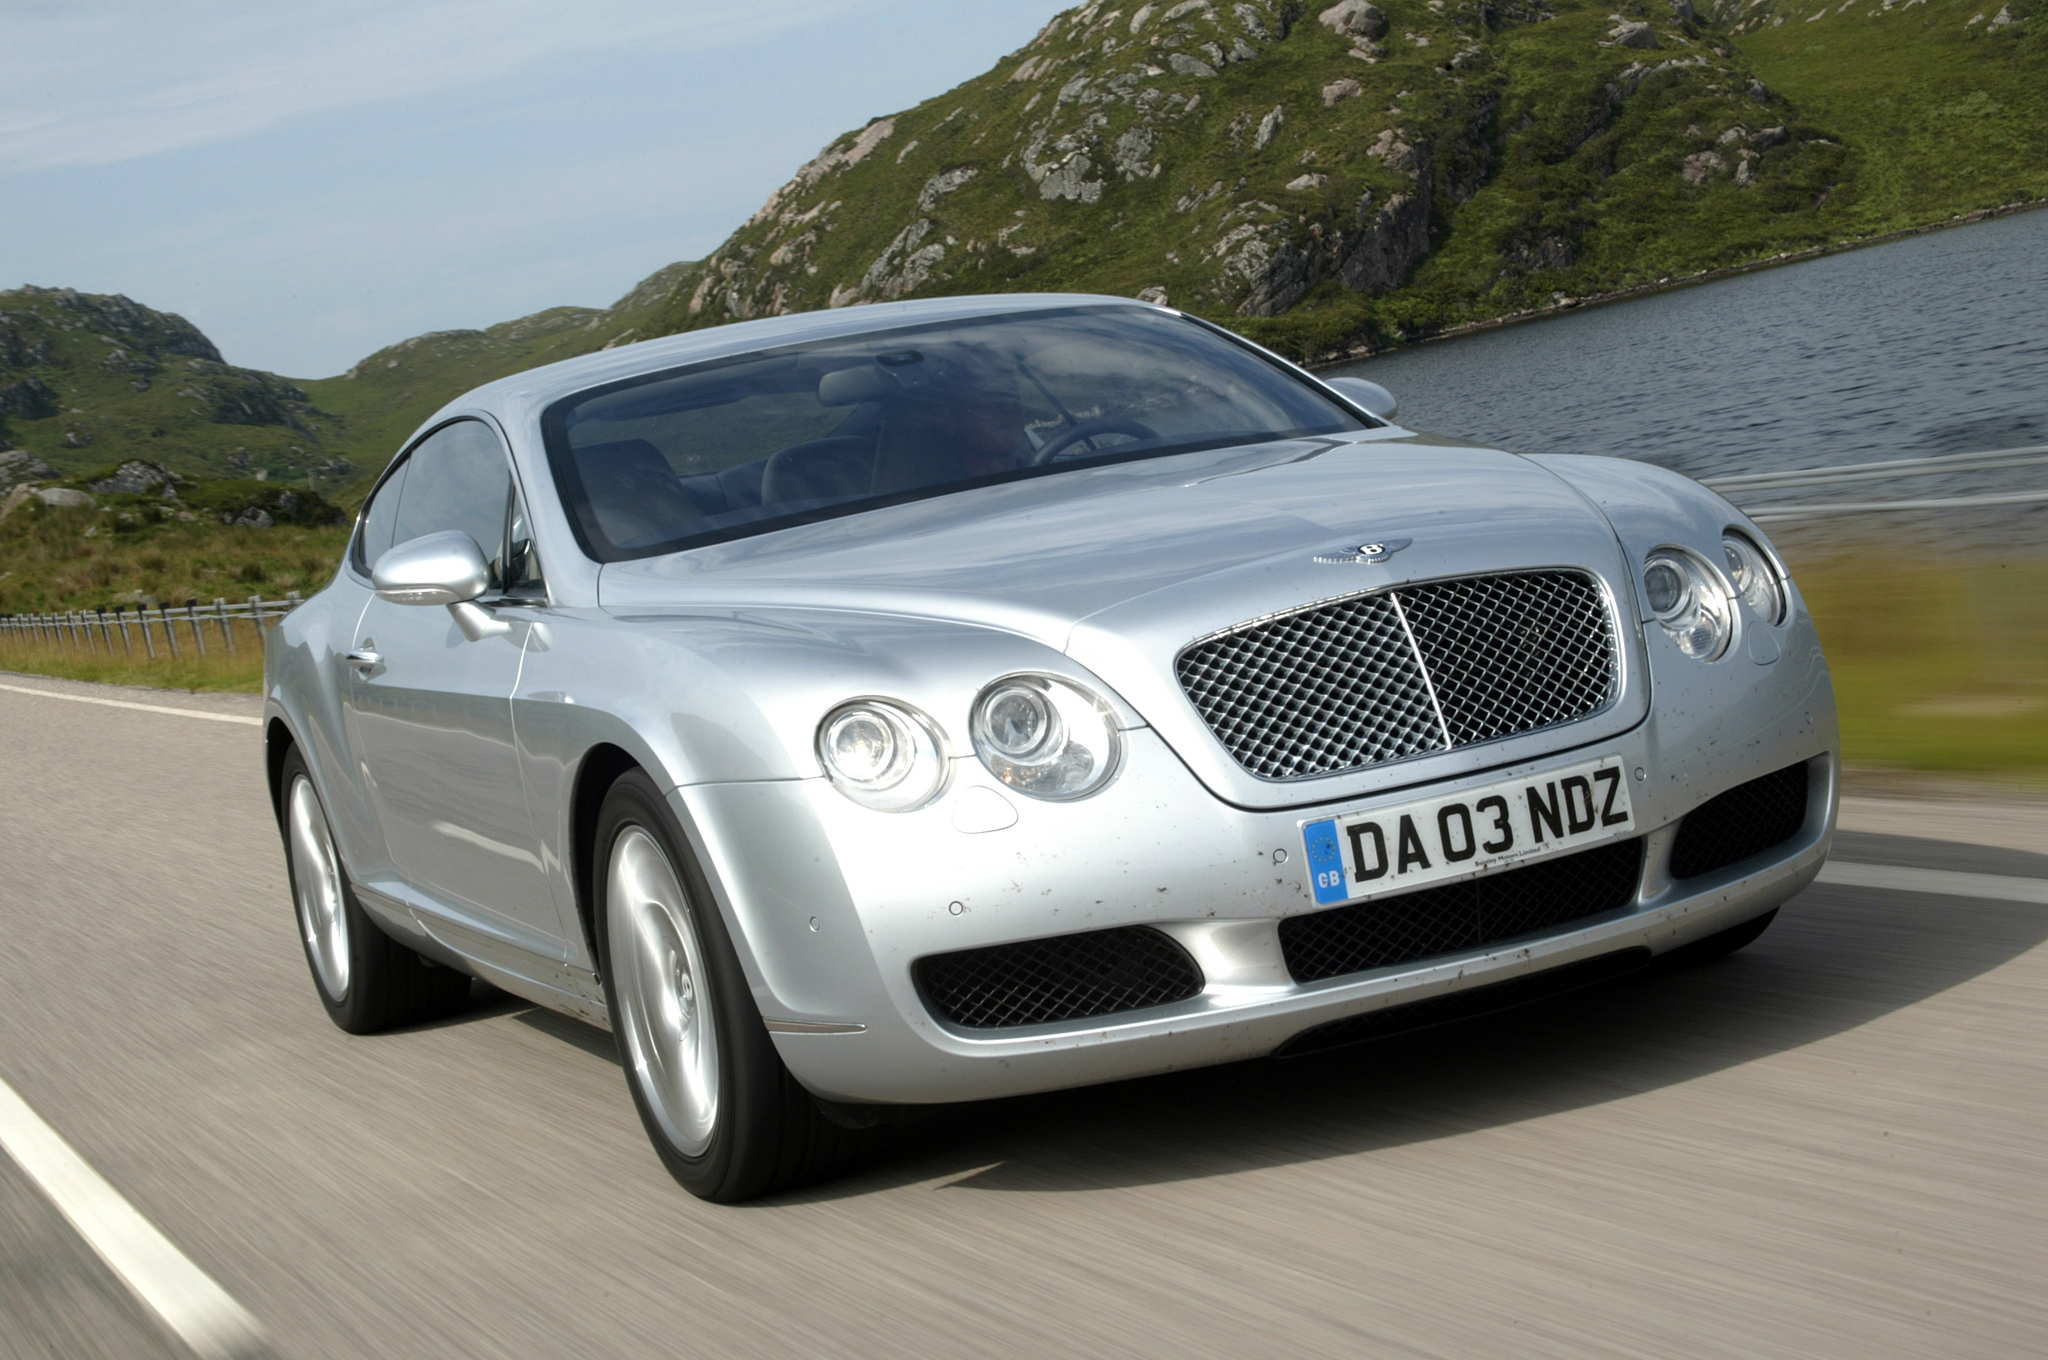 Bentley Continental Gt Front End In Motion on 2005 Bentley Continental Gt 0 60